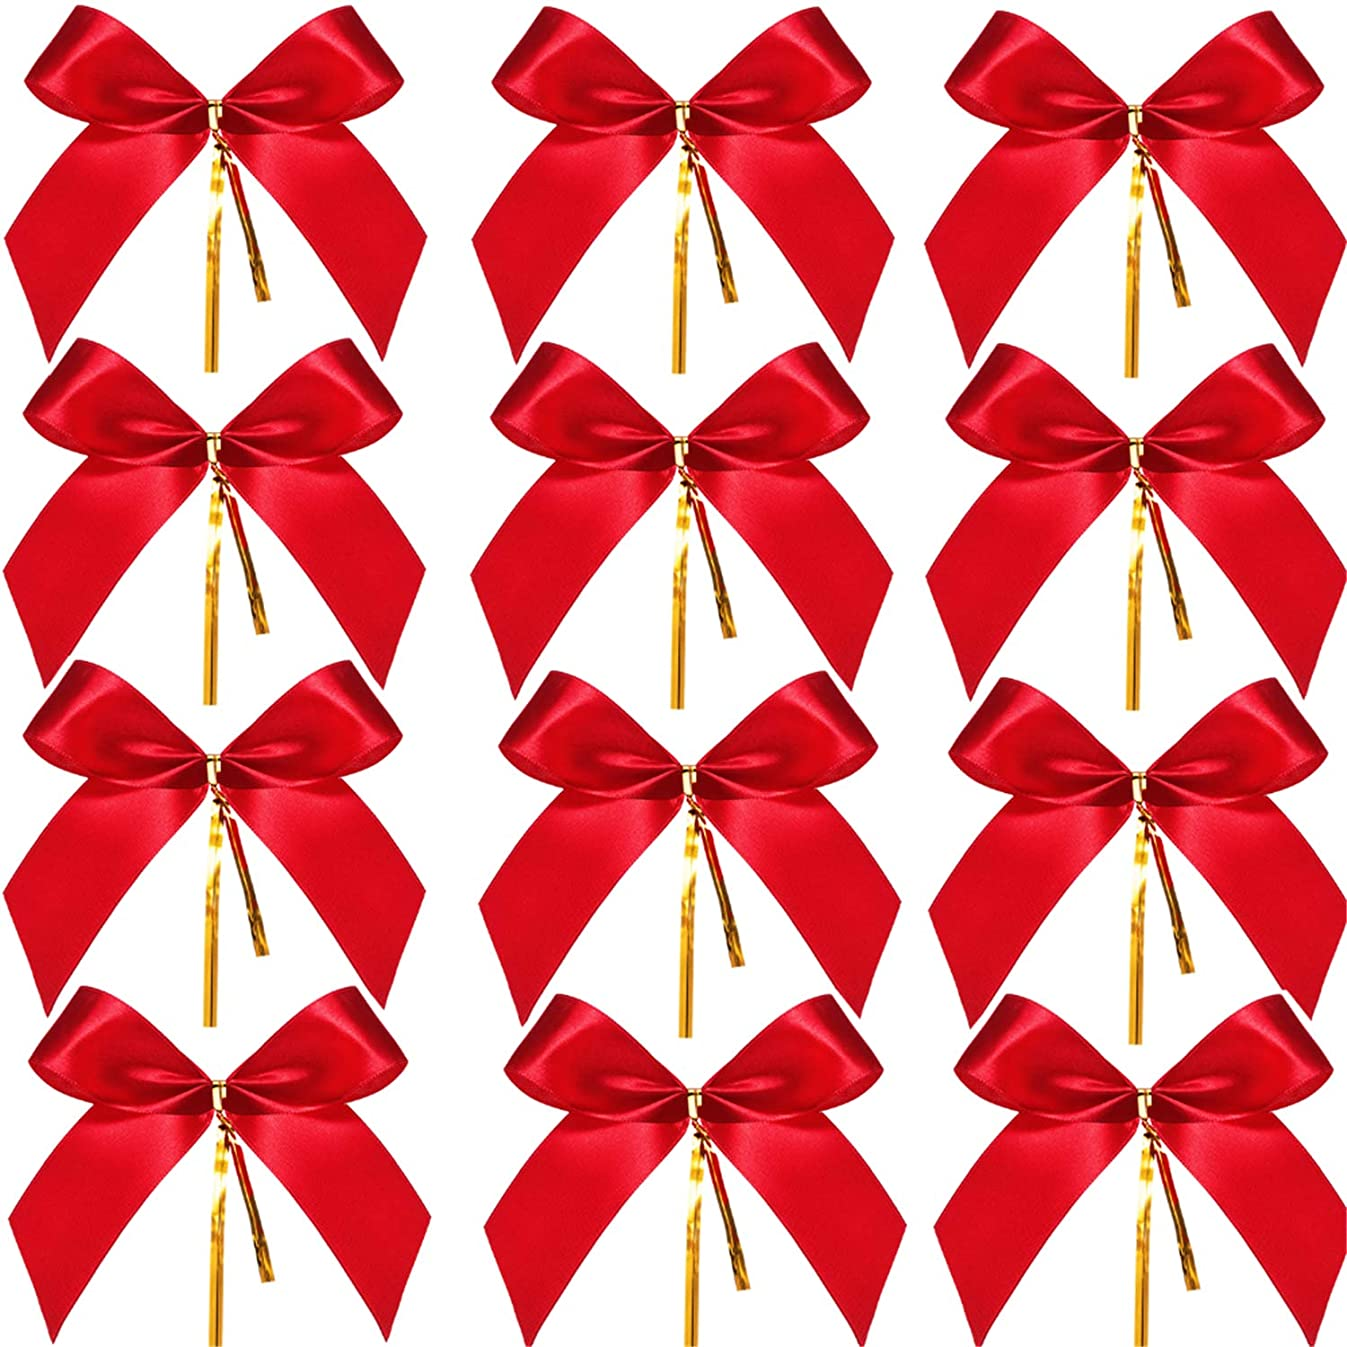 Sumind Christmas Bow Ribbon Bow for Christmas Tree, Christmas Wreath, Gift Decoration (48 Pieces, Size M)